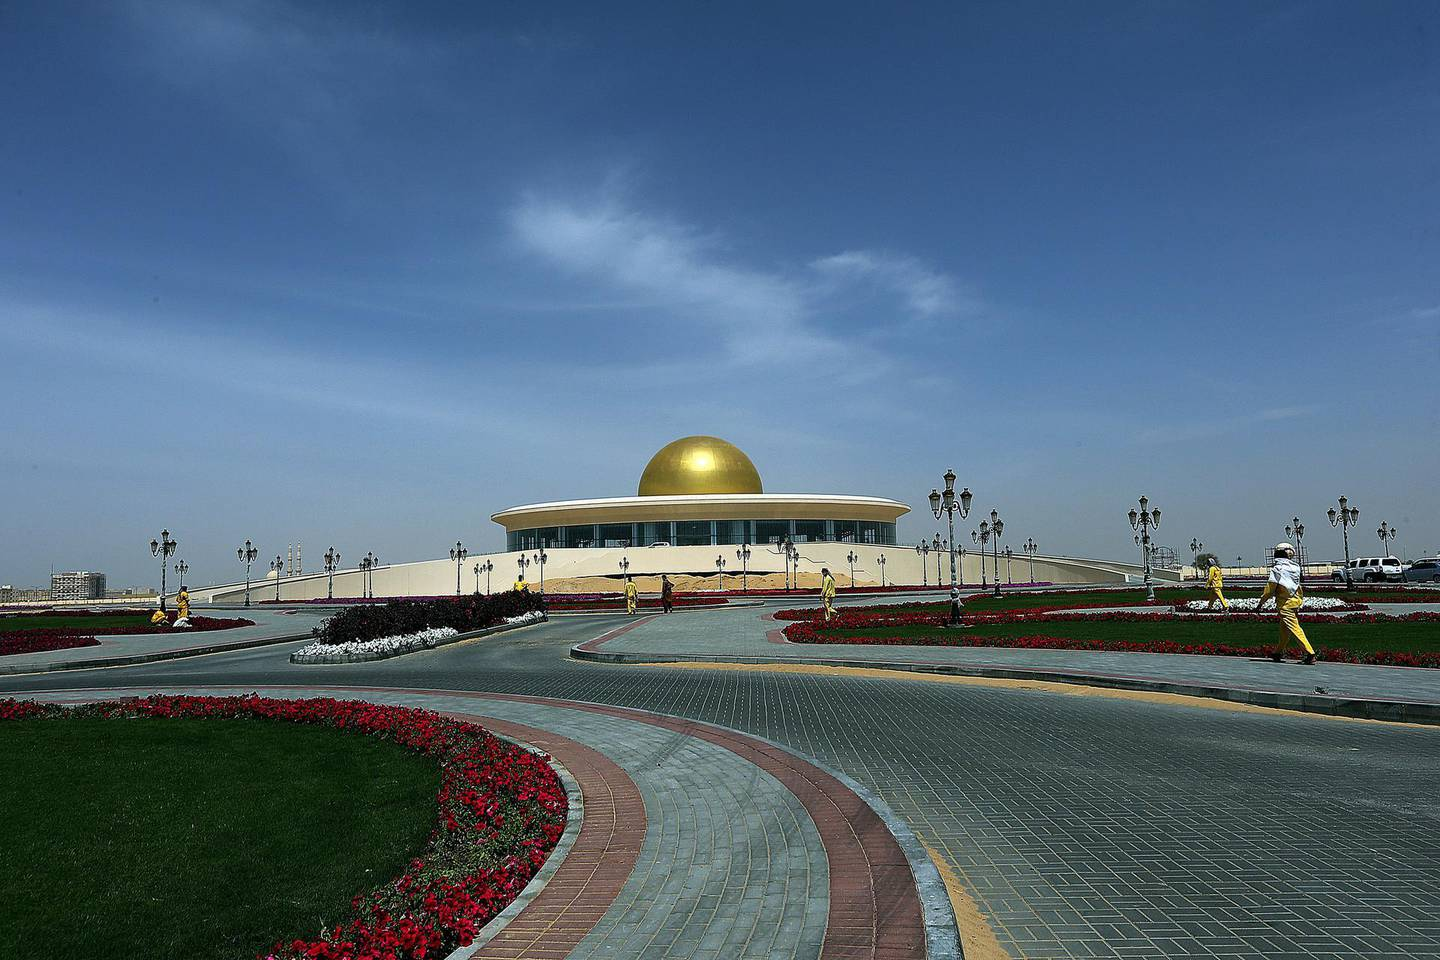 Sharjah, United Arab Emirates- March,24, 2015: Sharjah Centre for Space Sciences and Astronomy  in the Unversity  City in Sharjah . ( Satish Kumar / The National ) For Focus / Story by Rym Ghazal *** Local Caption ***  SK-SharjahAstronomy-24032015-01.jpg